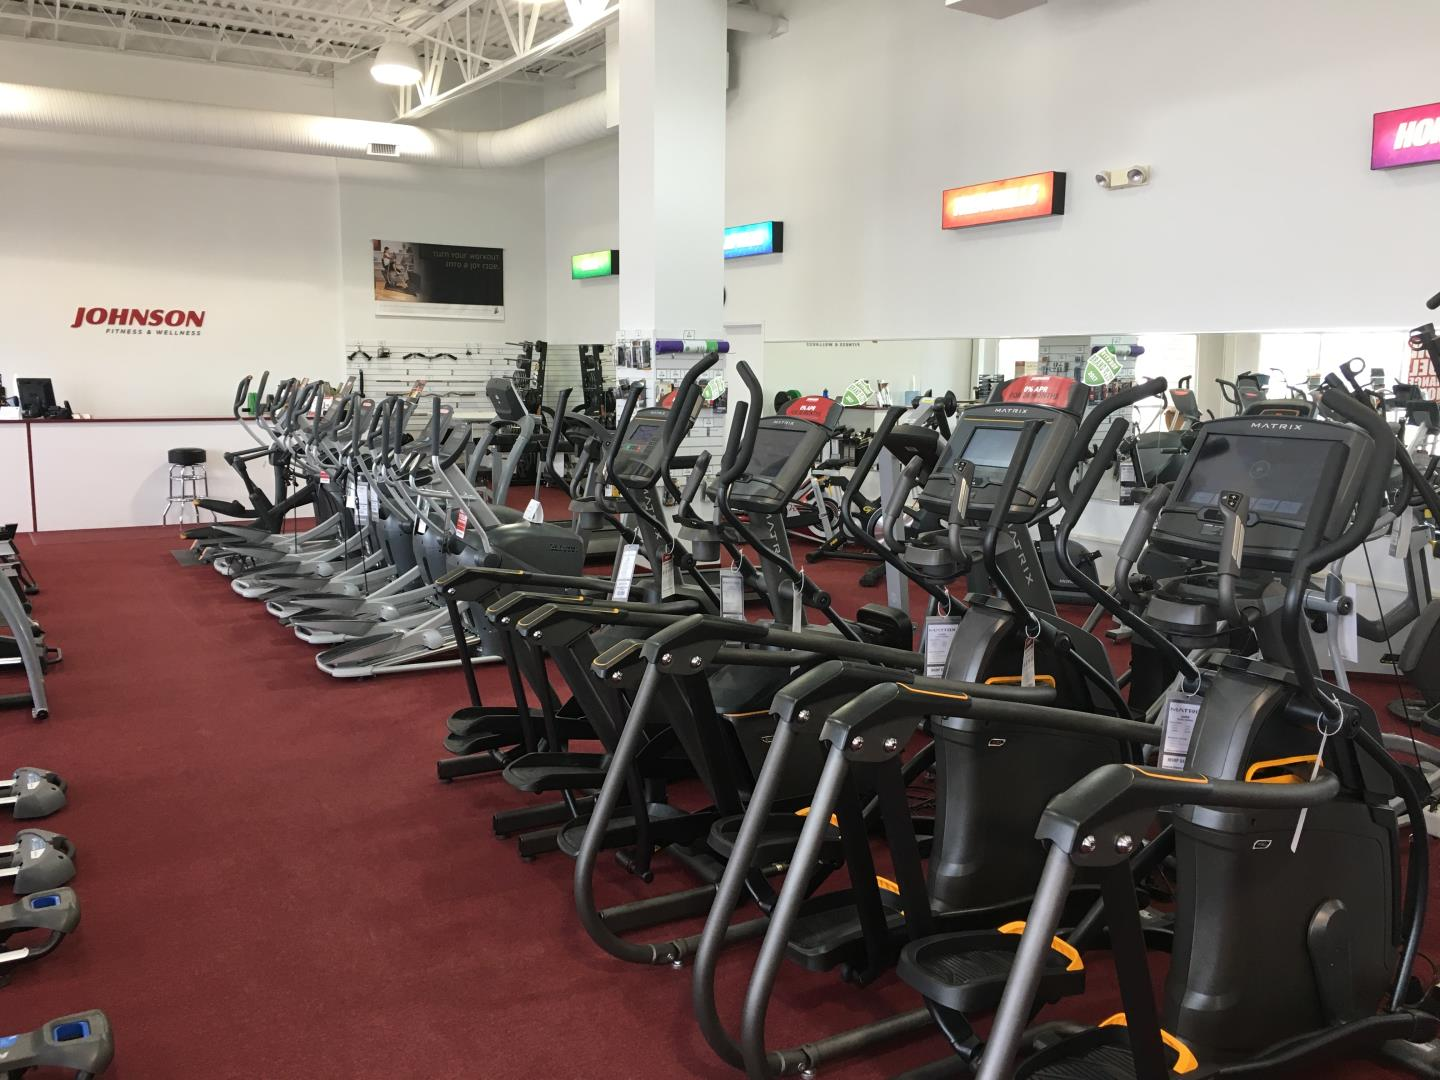 Johnson Fitness & Wellness - West Des Moines, IA